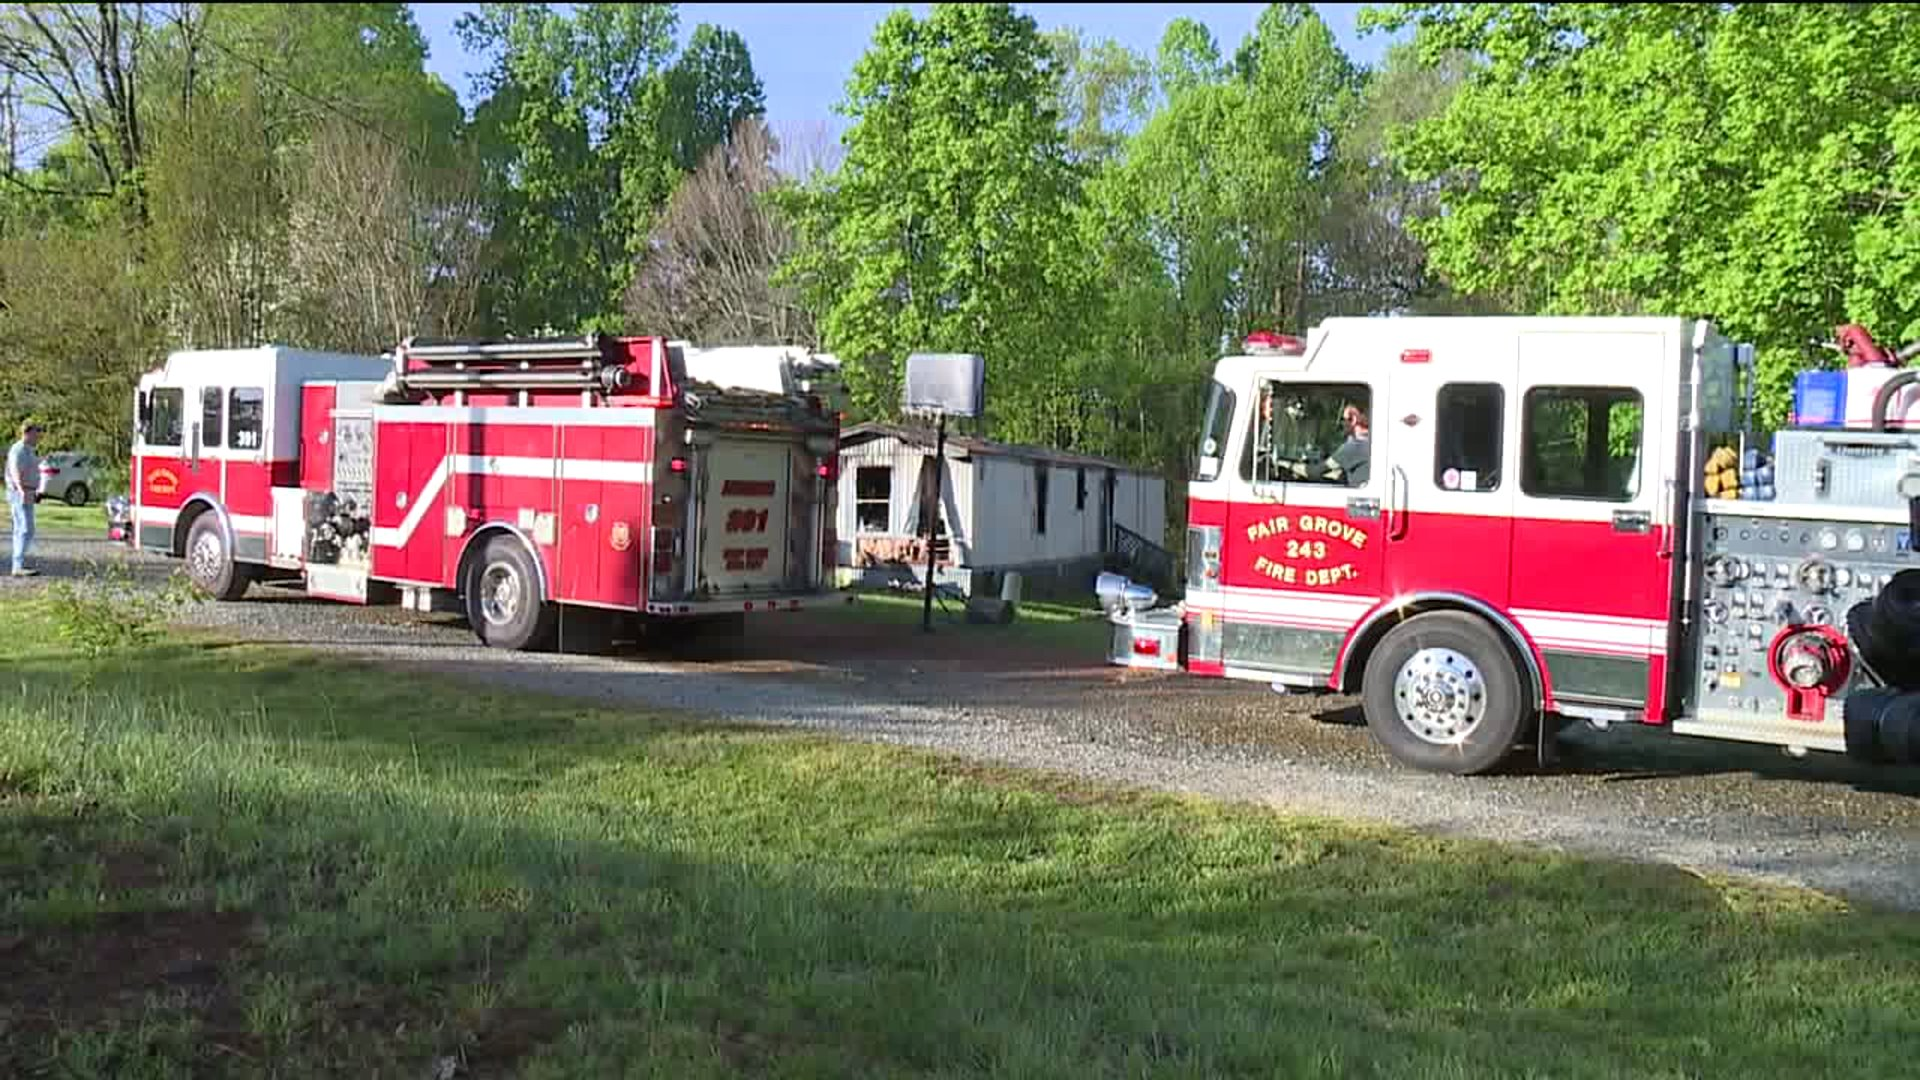 One person is dead after a fire at Ashley Mobile Home Park in Trinity, according to the fire marshal.